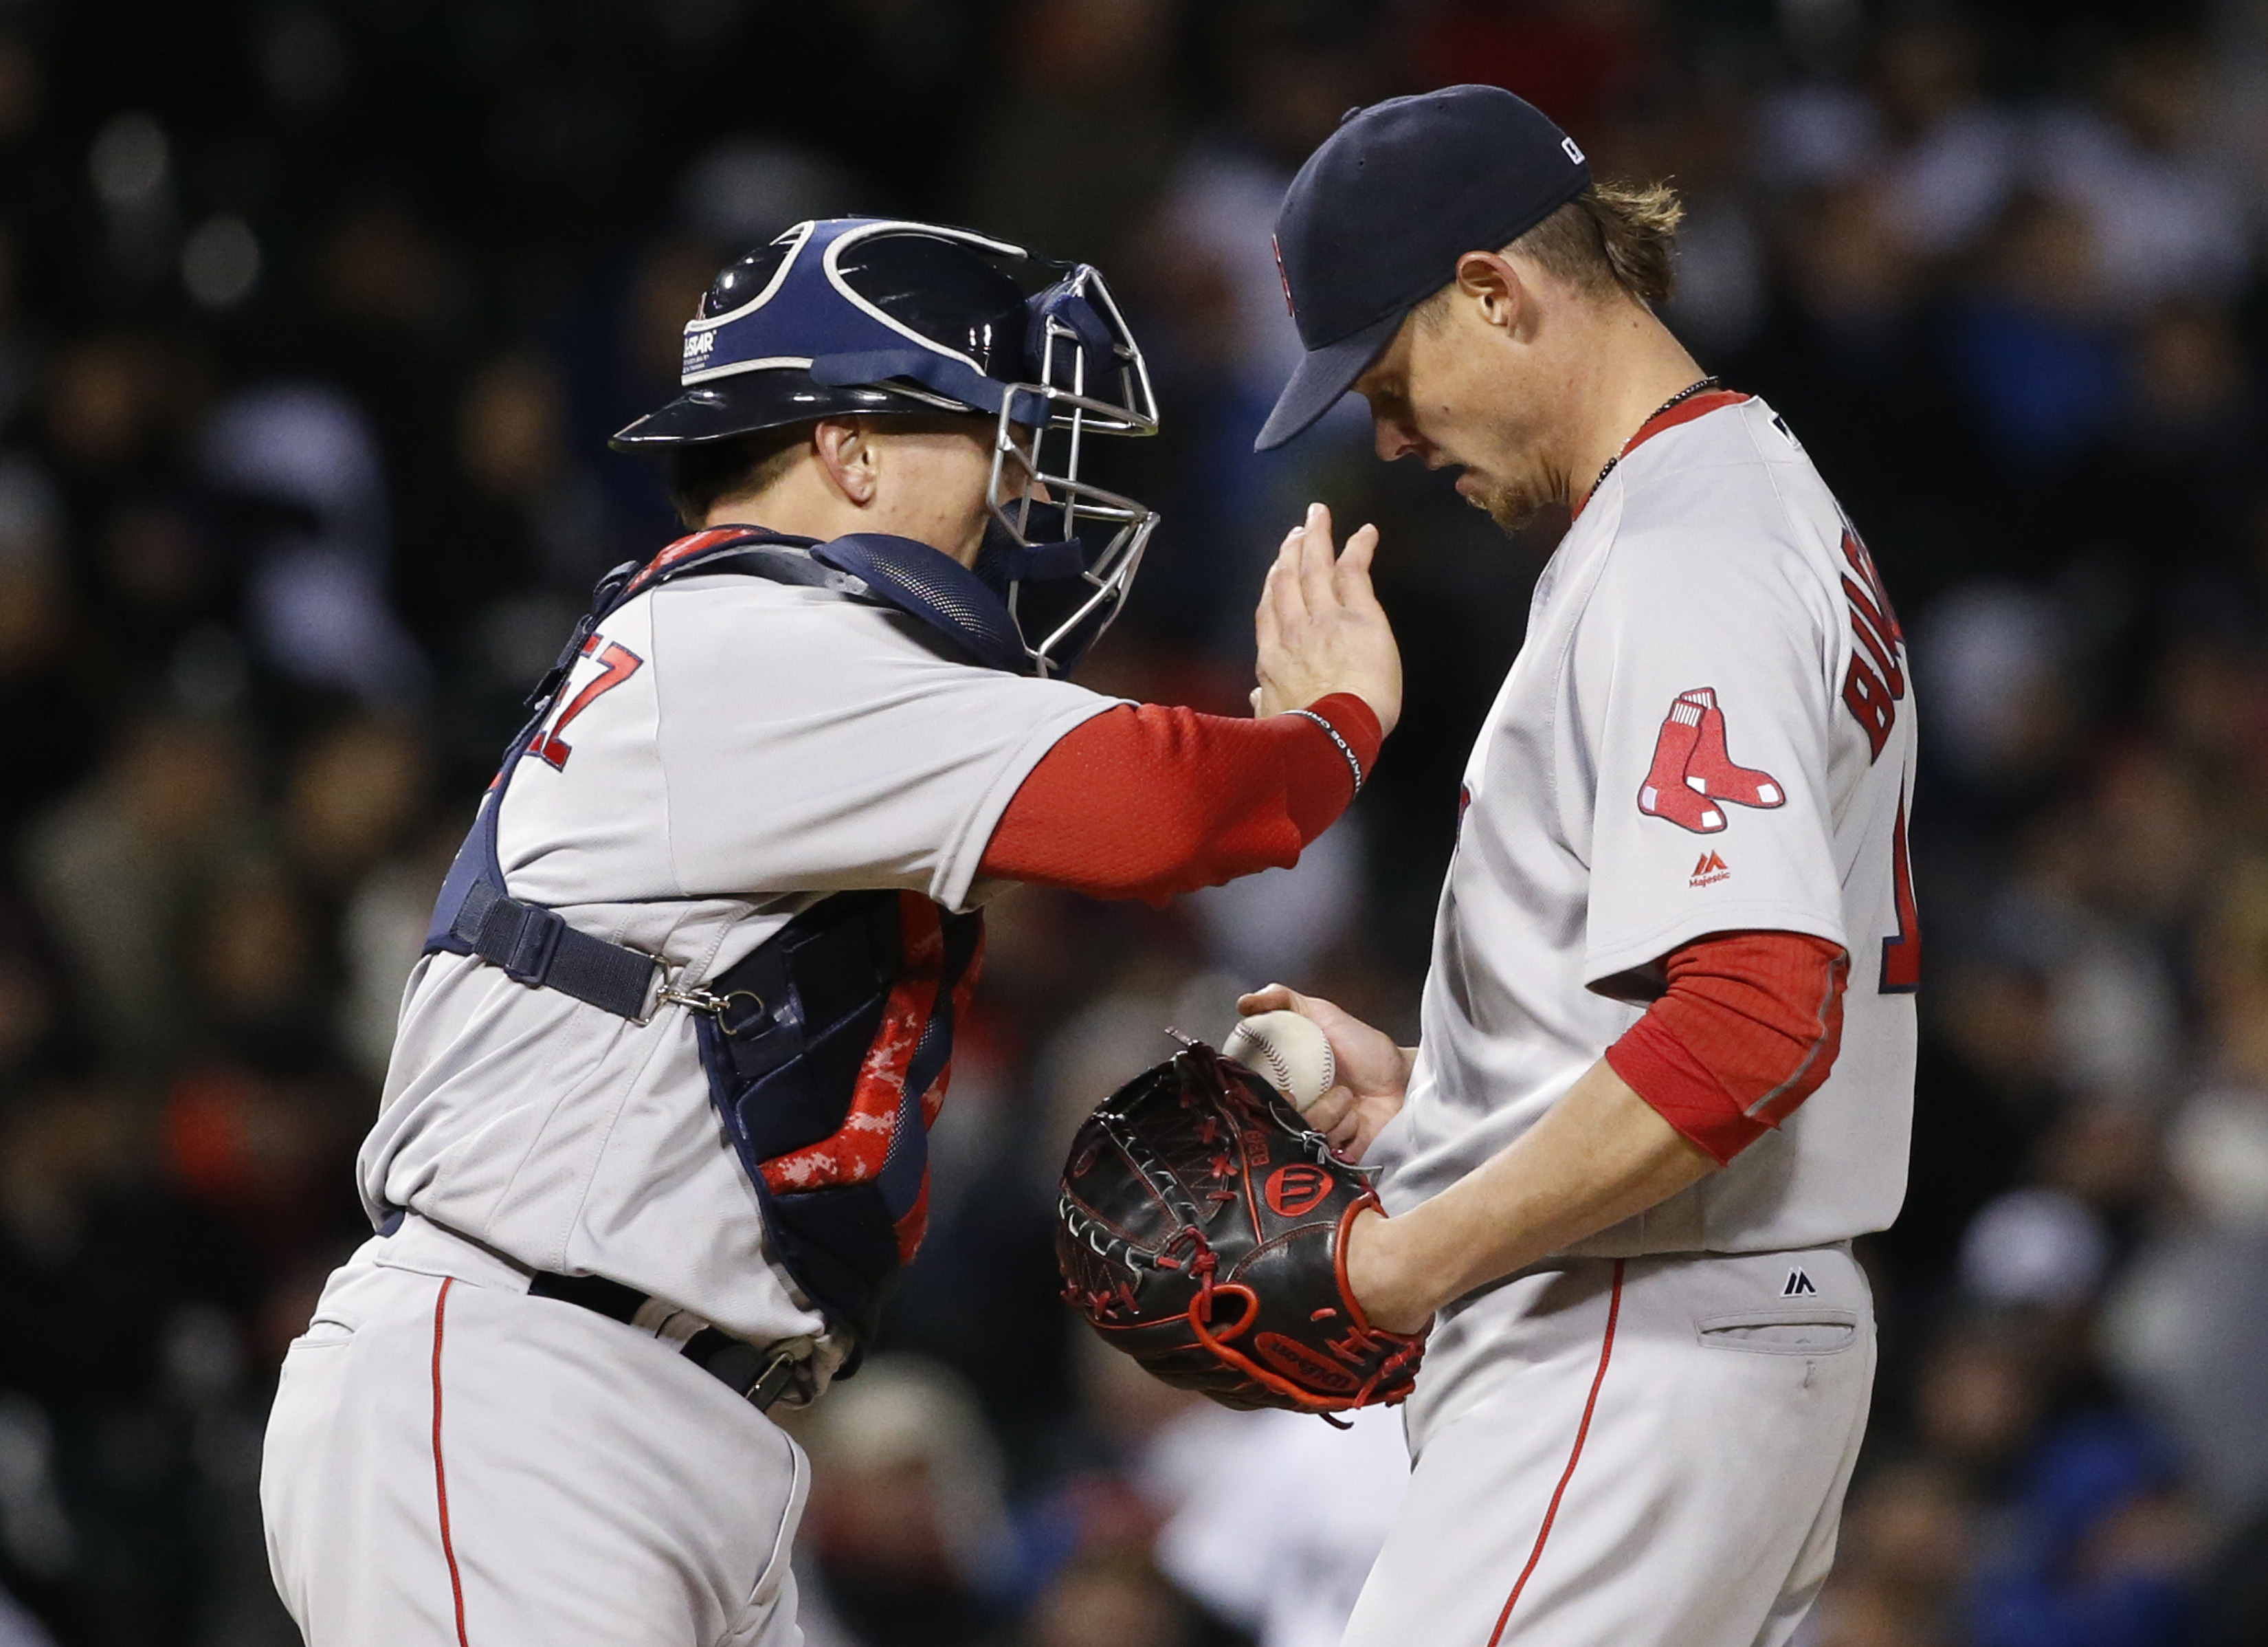 Boston Red Sox catcher Christian Vazquez, left, encourages starting pitcher Clay Buchholz during the fourth inning of a baseball game against the Chicago White Sox Wednesday, May 4, 2016, in Chicago. (AP Photo/Charles Rex Arbogast)